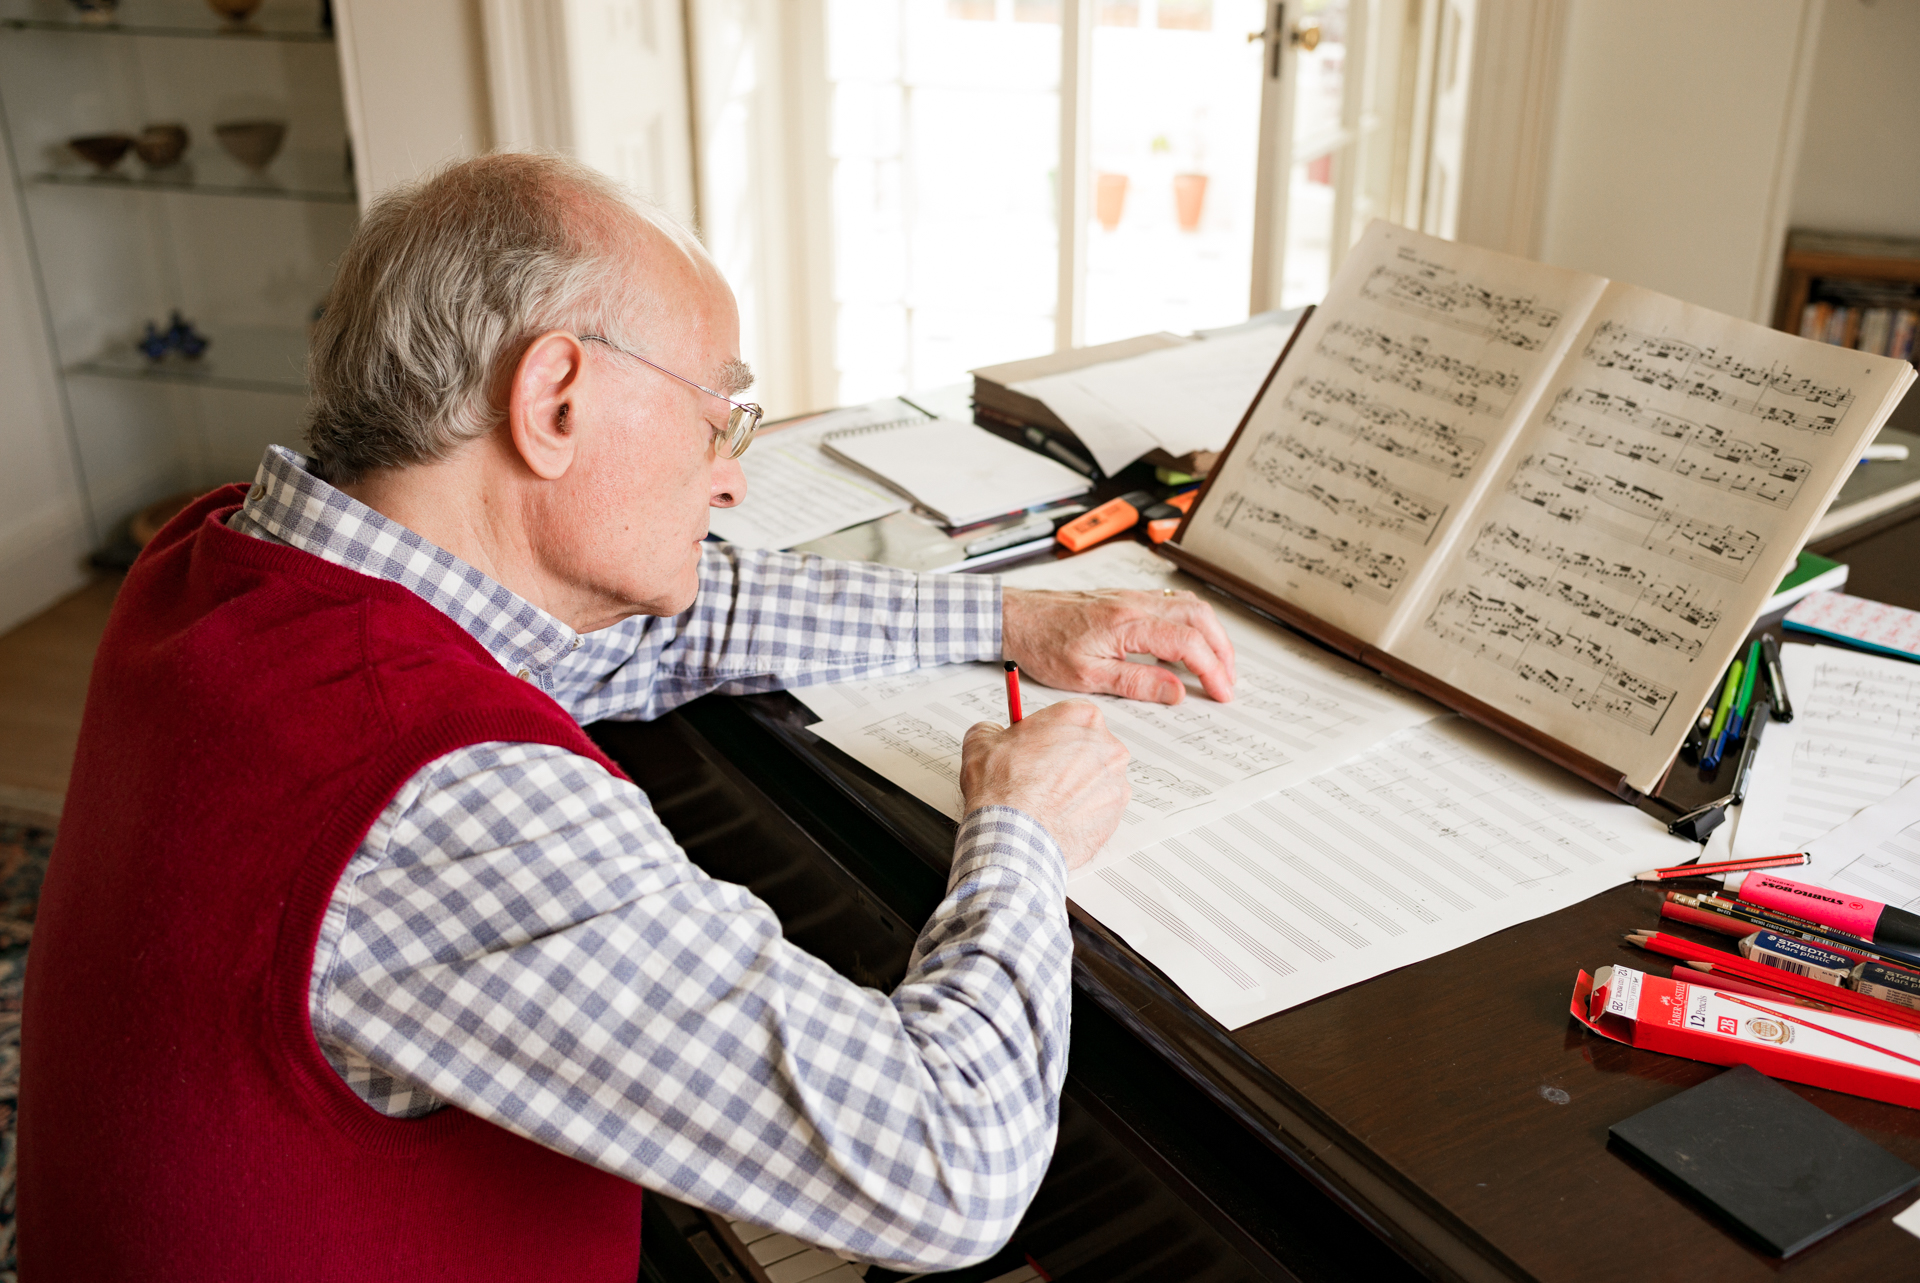 JOHN RUTTER - I manage the digital presence for composer and conductor John Rutter, including his social media, streaming platforms, mailing list, website and PR.